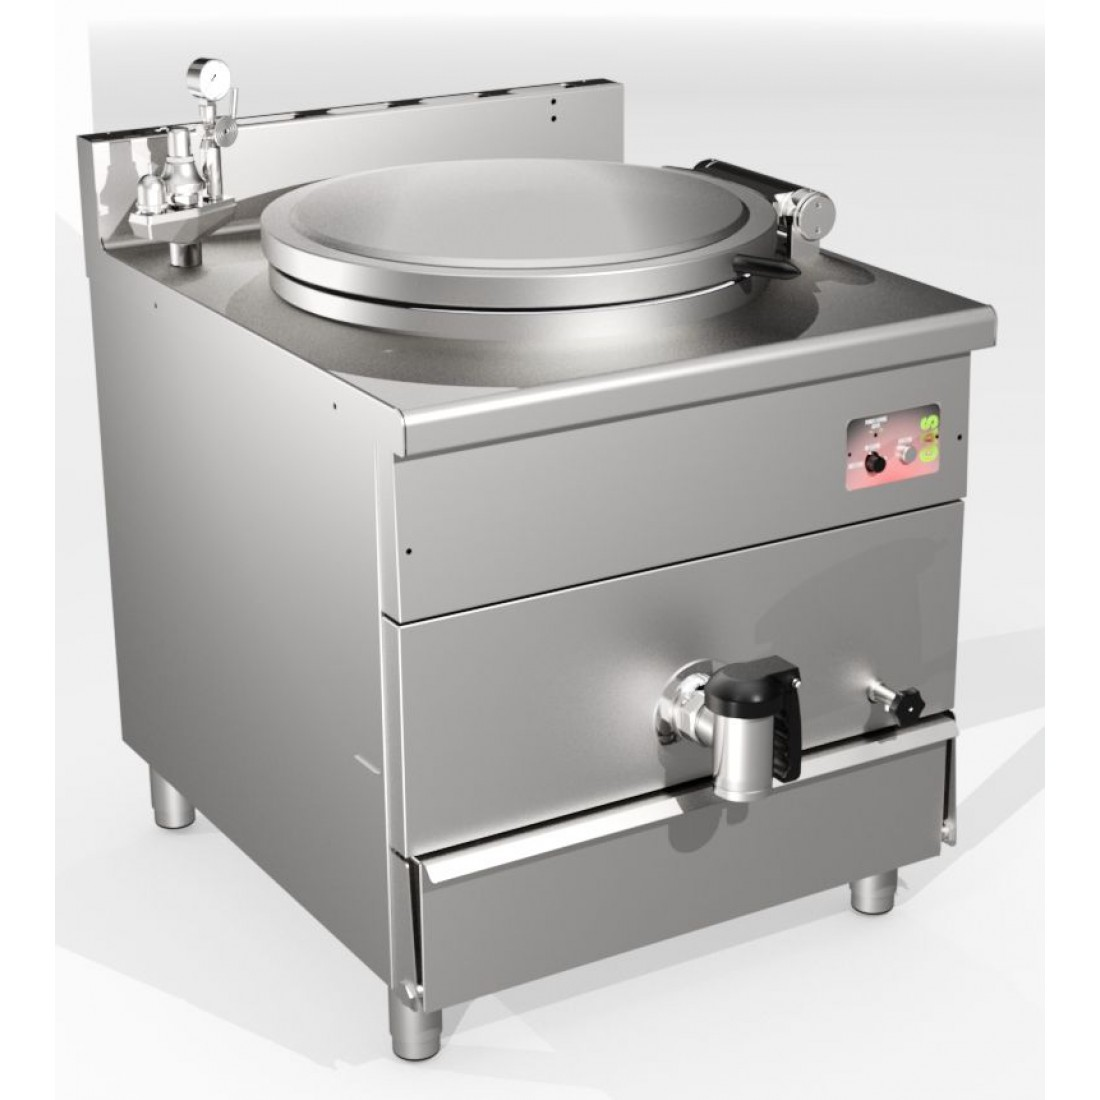 INDIRECT HEATING GAS BOILING PANS